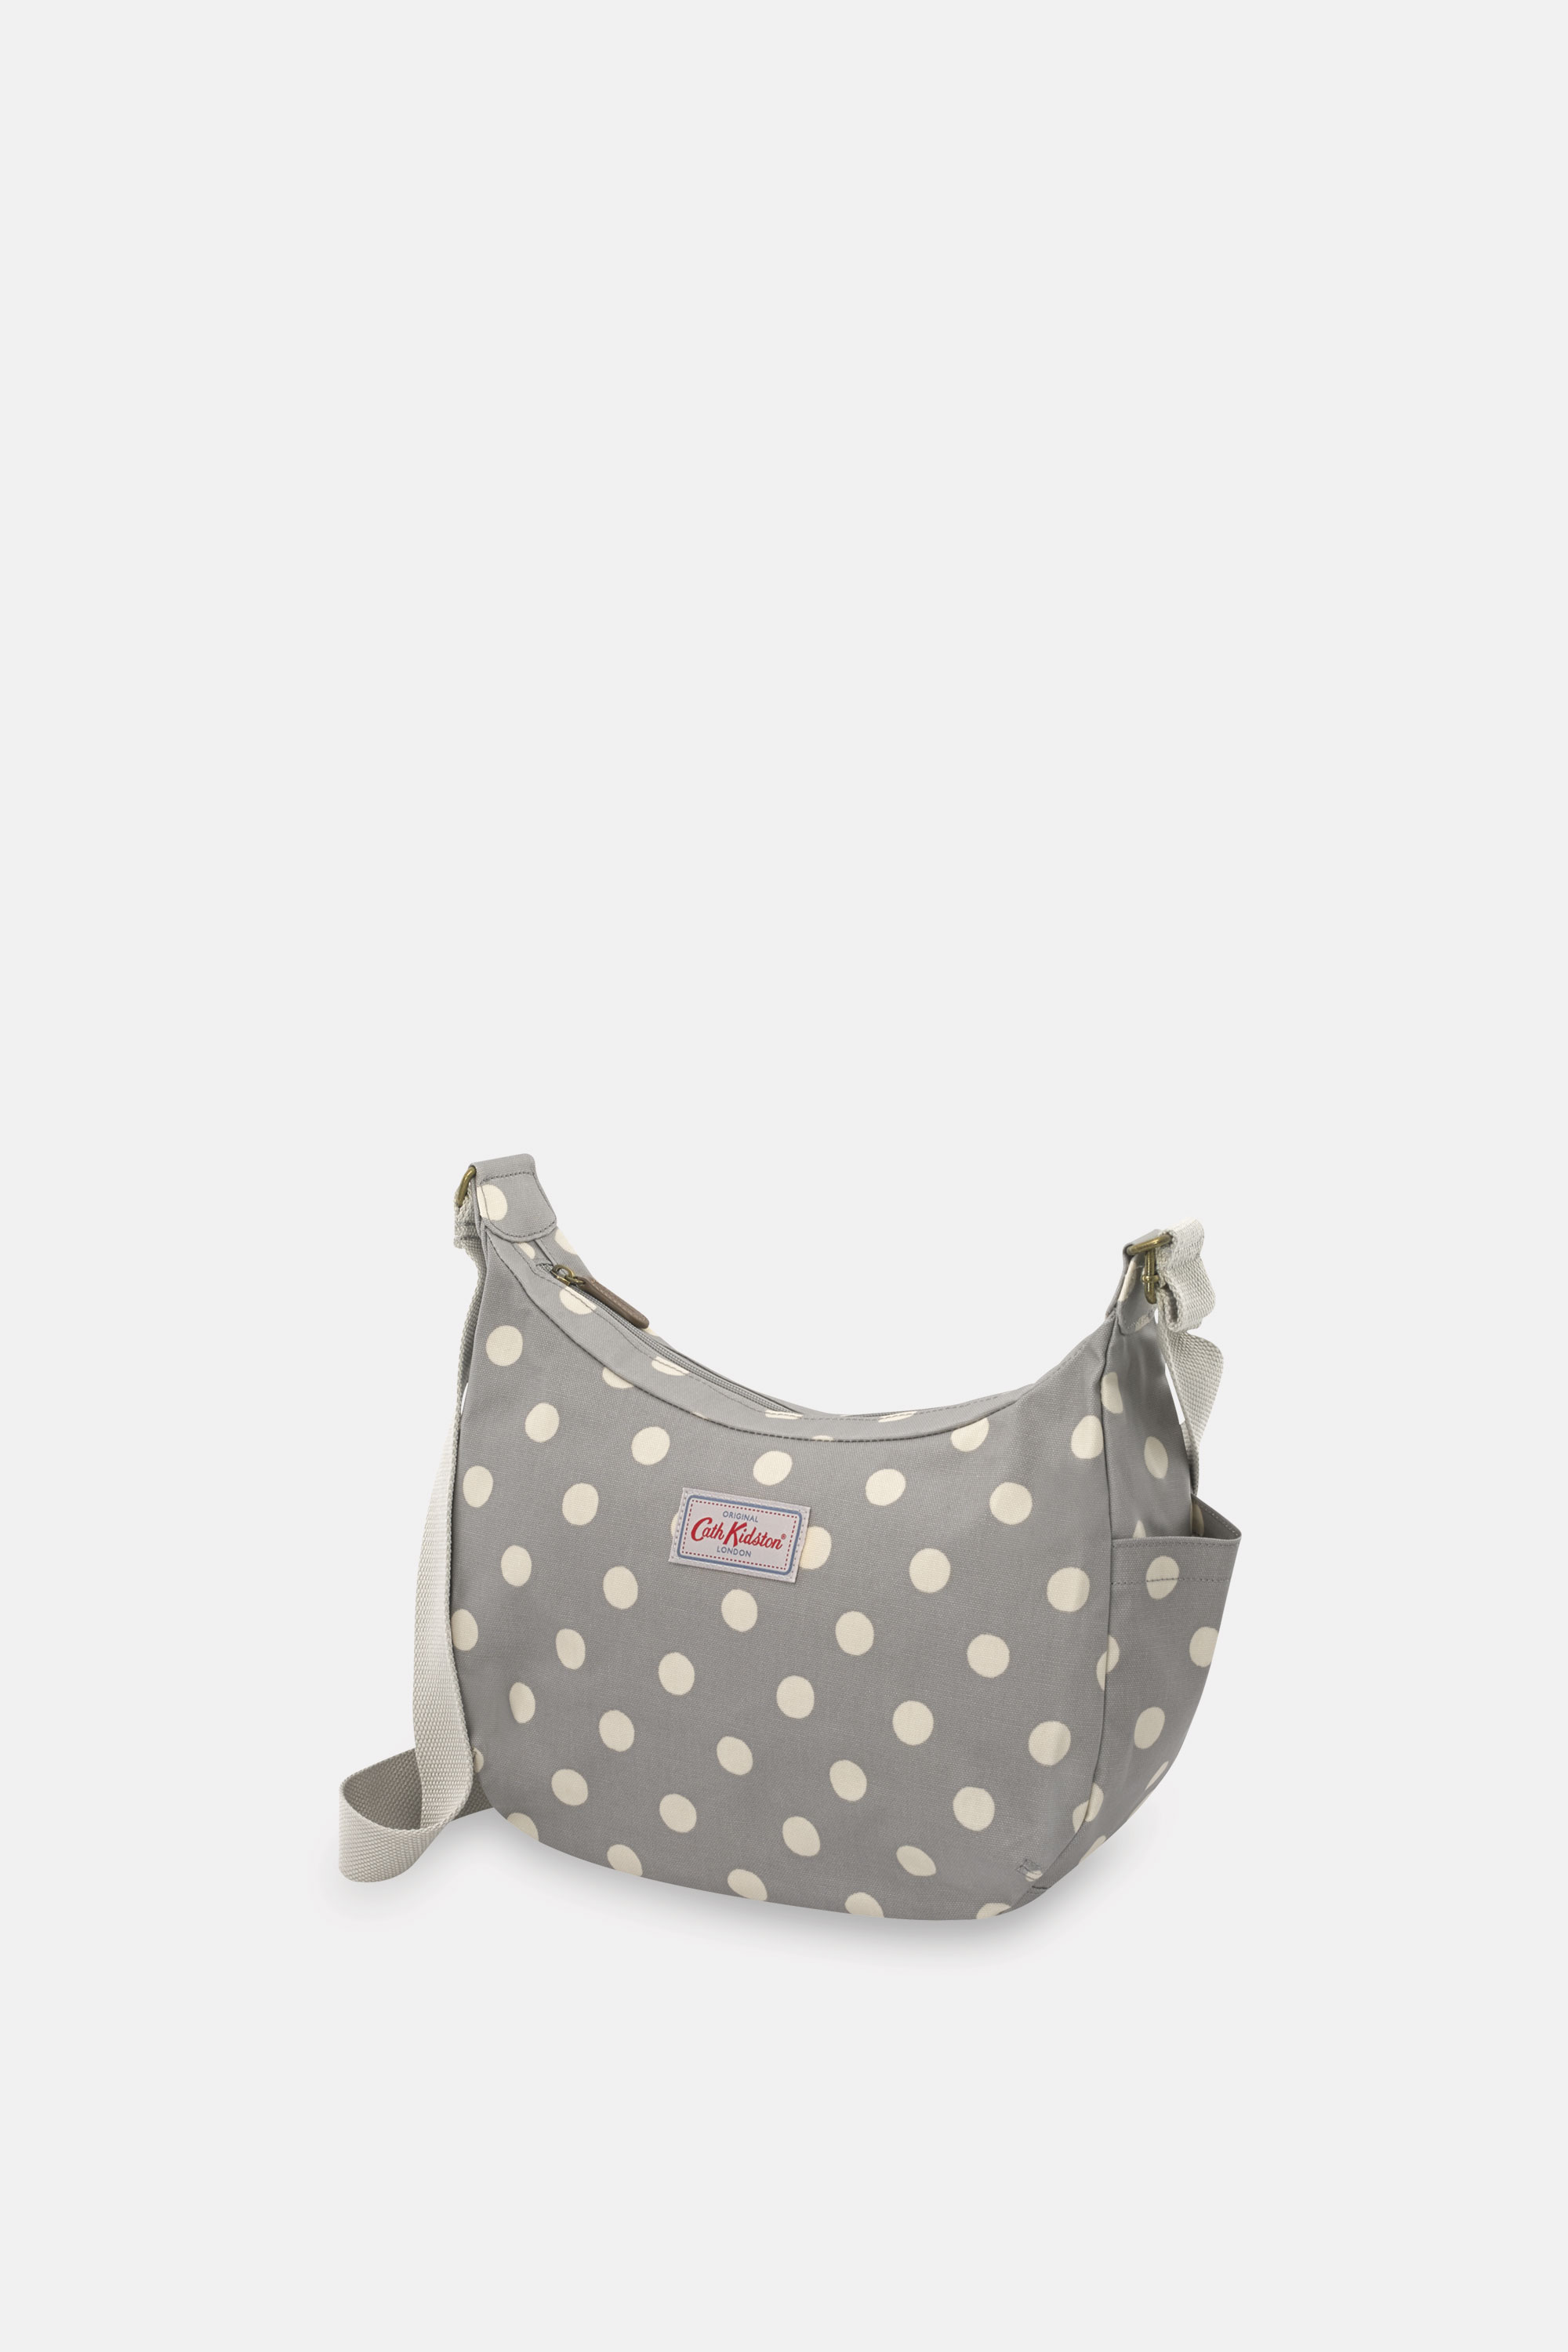 Cath Kidston Button Spot Everyday Bag in Grey, 100% Coated Cotton